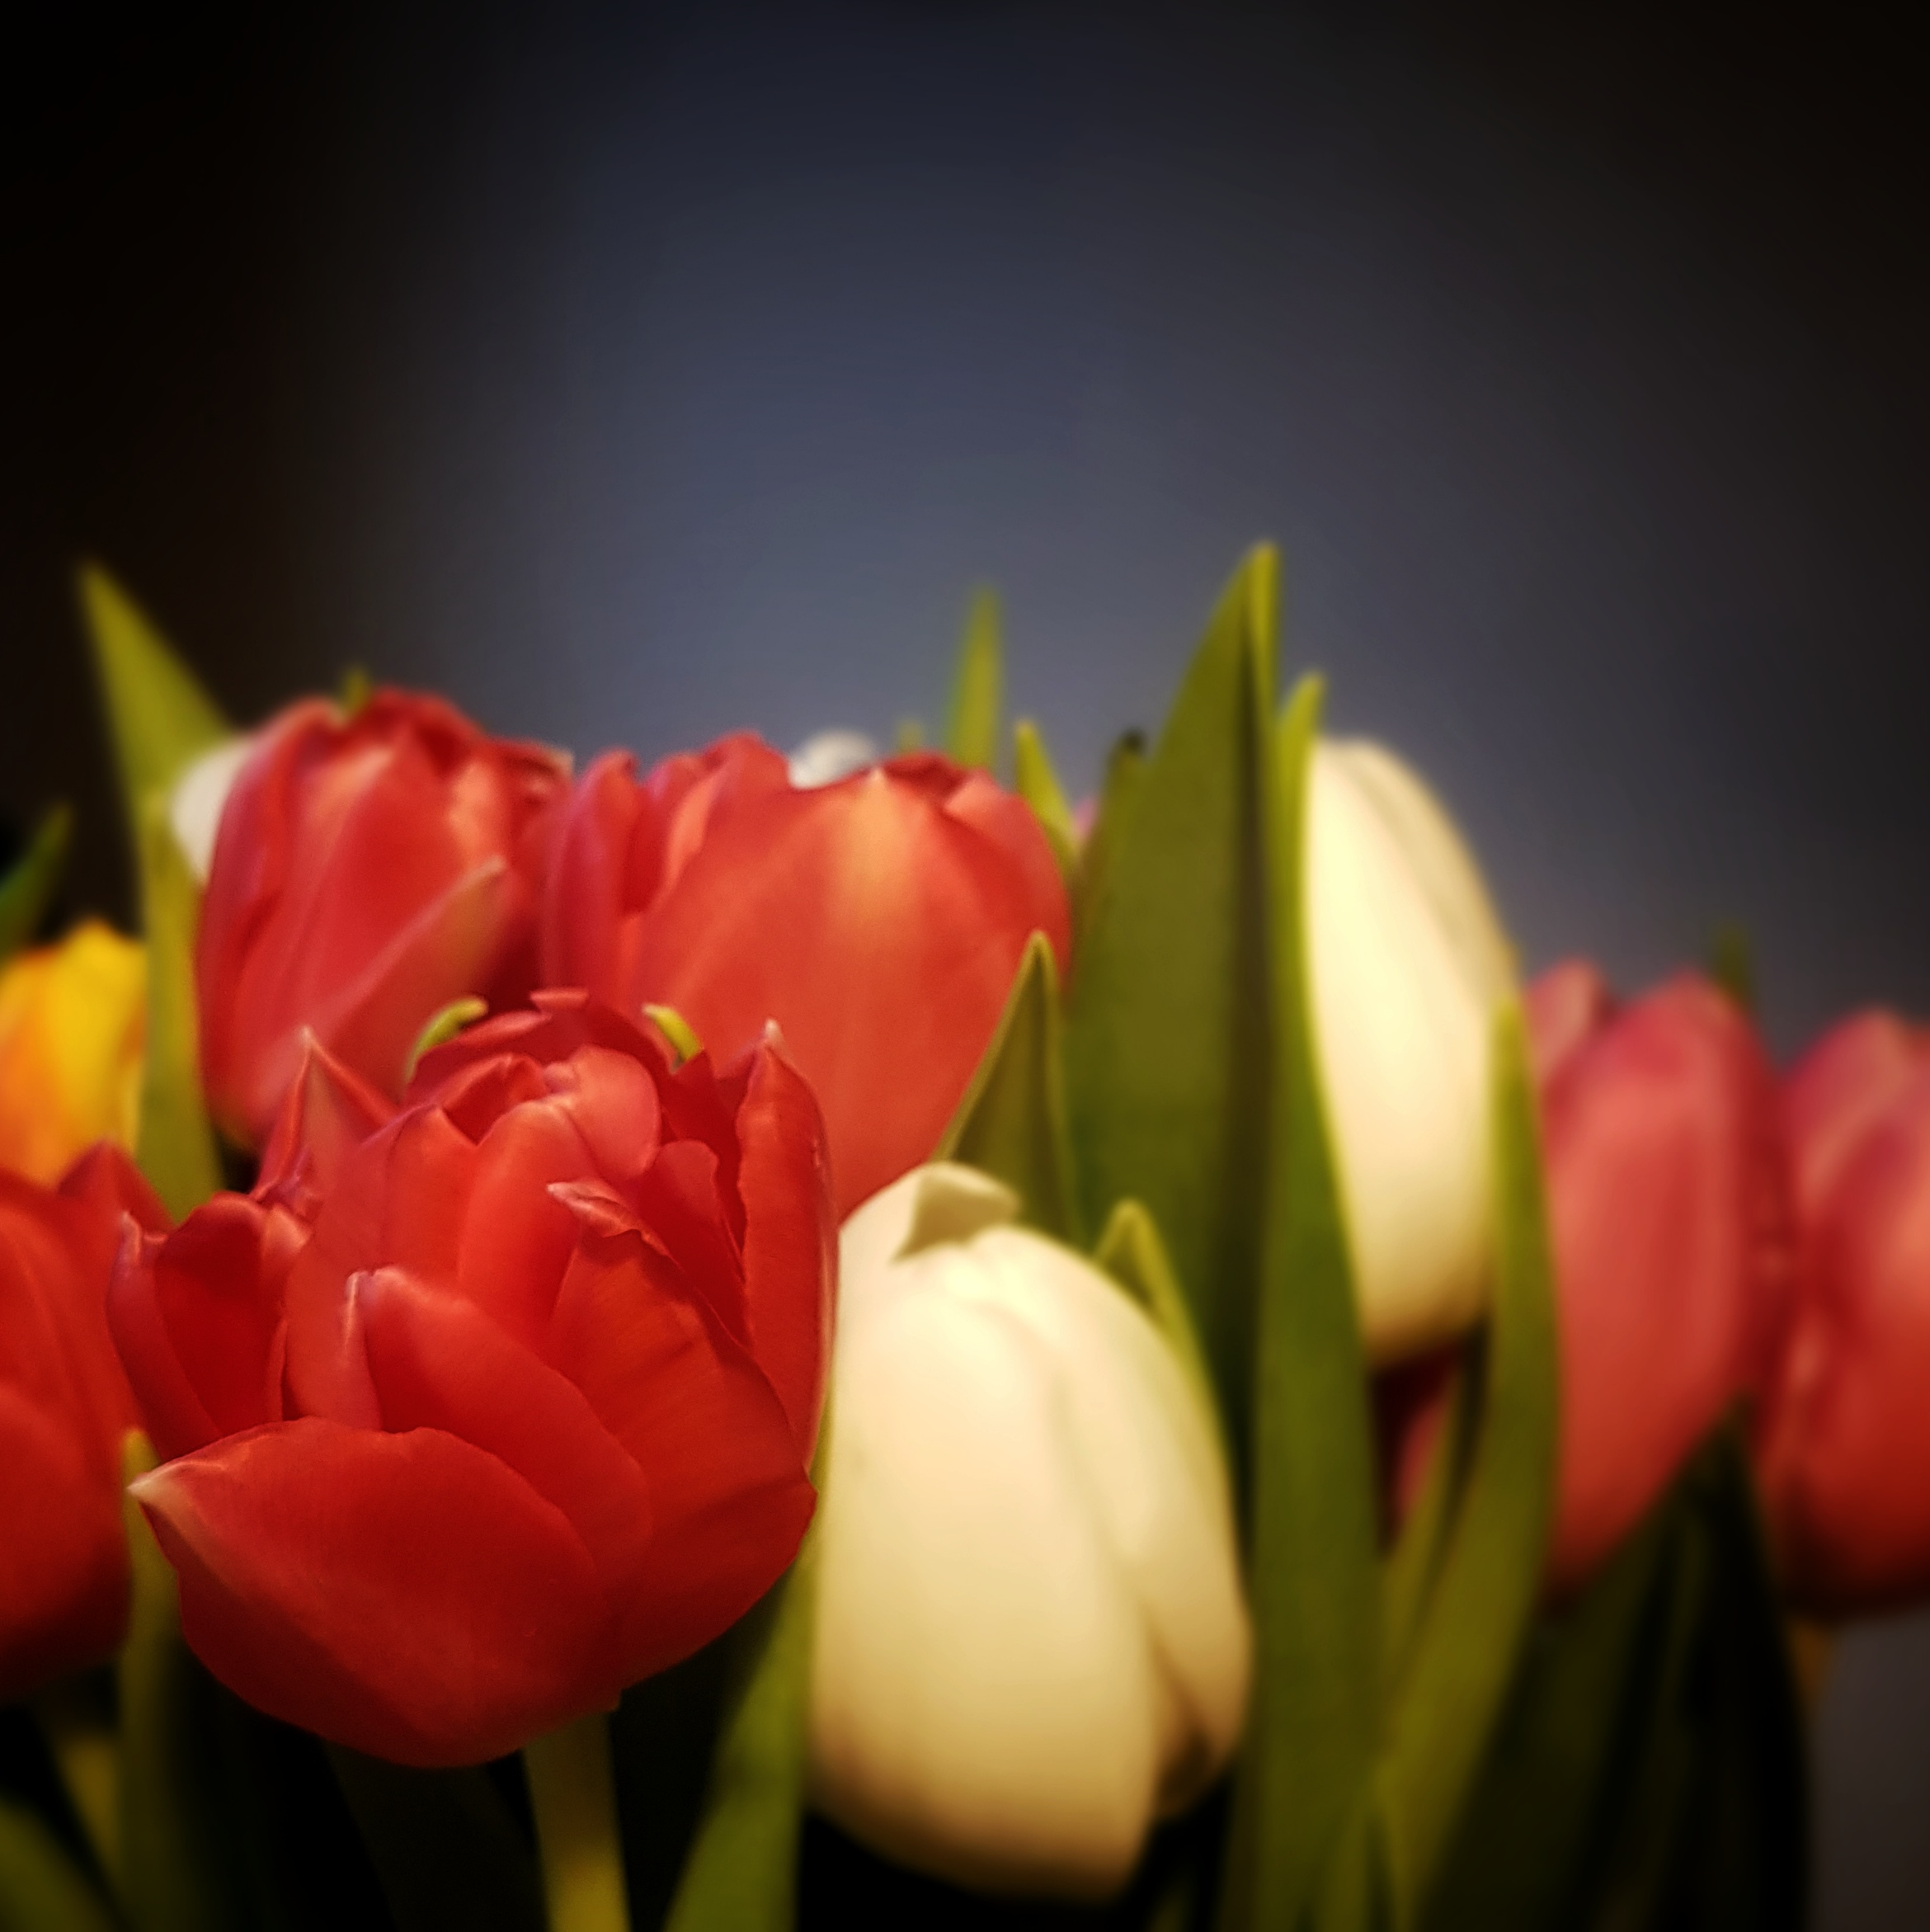 Day 24: January 24 - Tulips